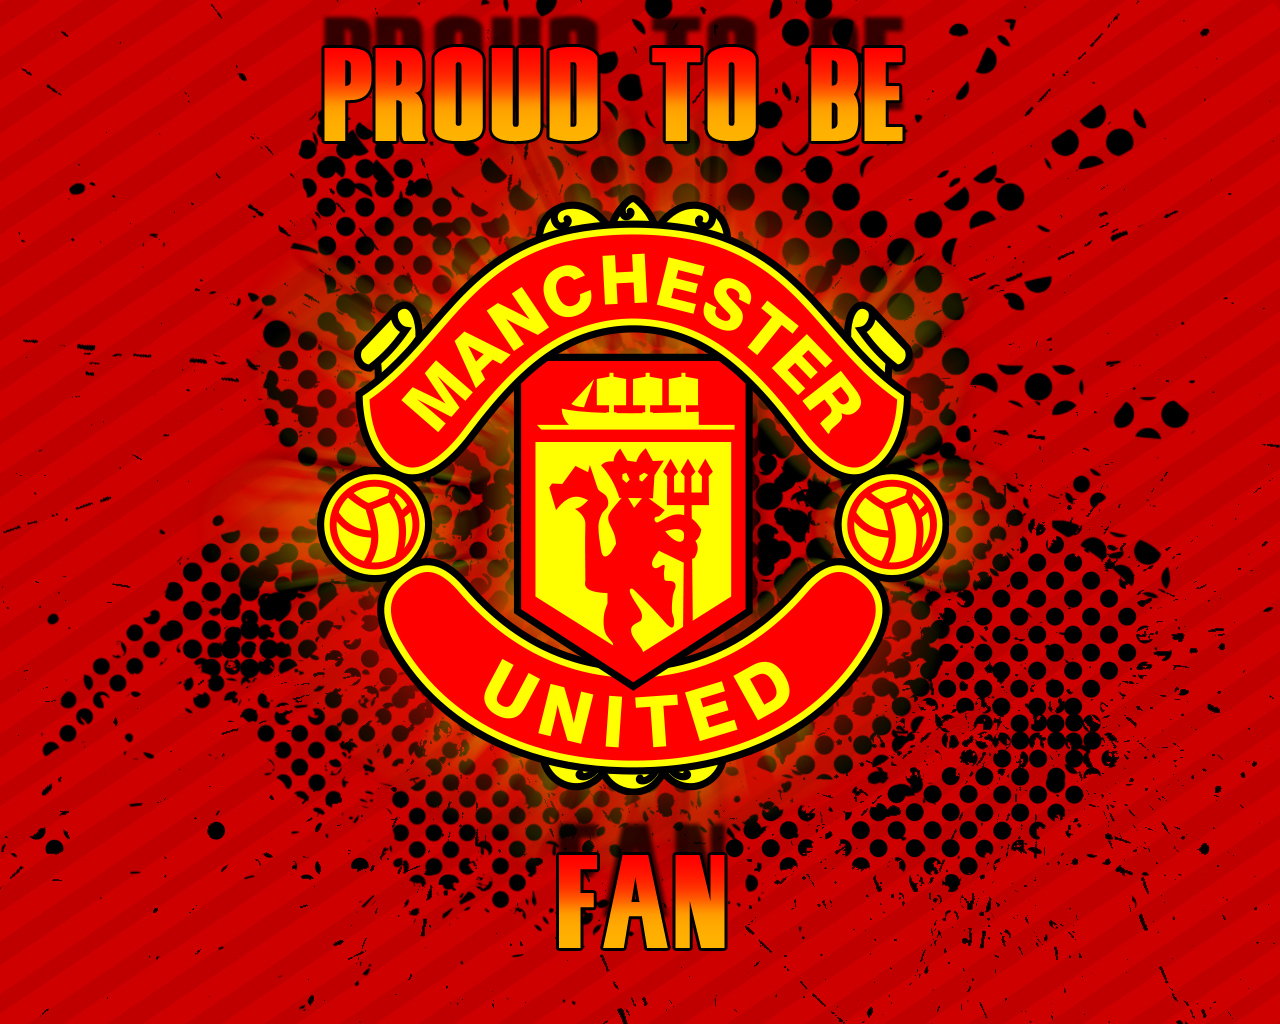 Manchester United Wallpaper Wide Epic Wallpaperz 1280x1024